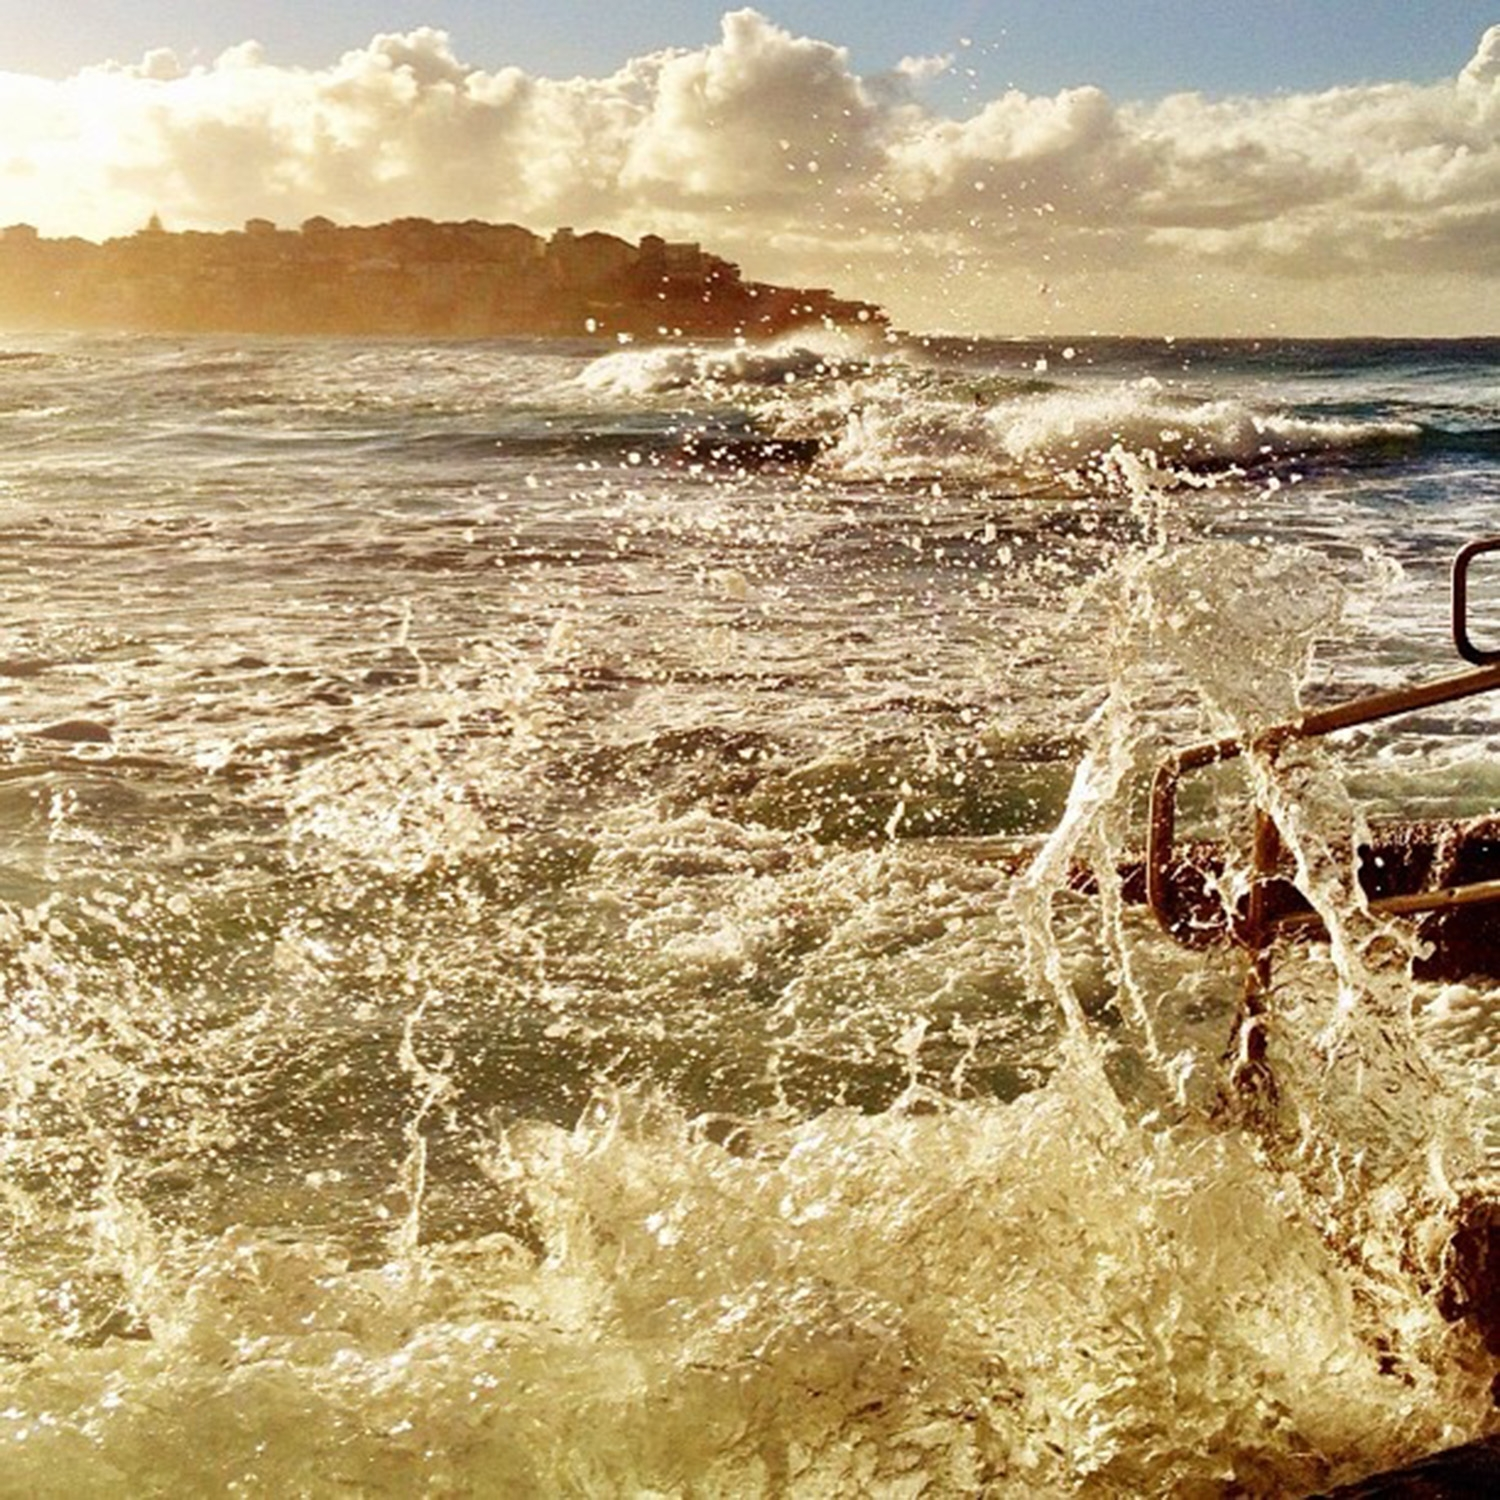 Waves splash during golden hour at South Bondi